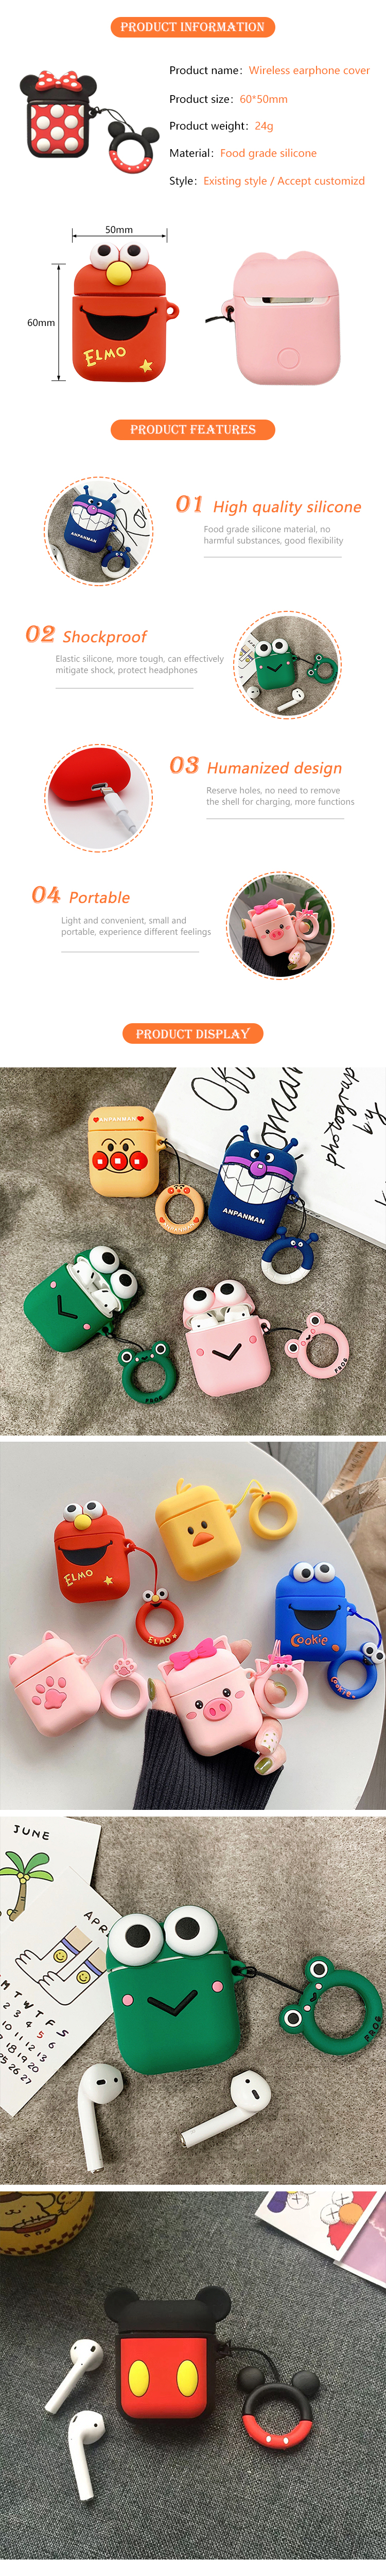 Silicone Wireless Earphone Headset Bag Pack Dustproof Shockproof Headphone Case